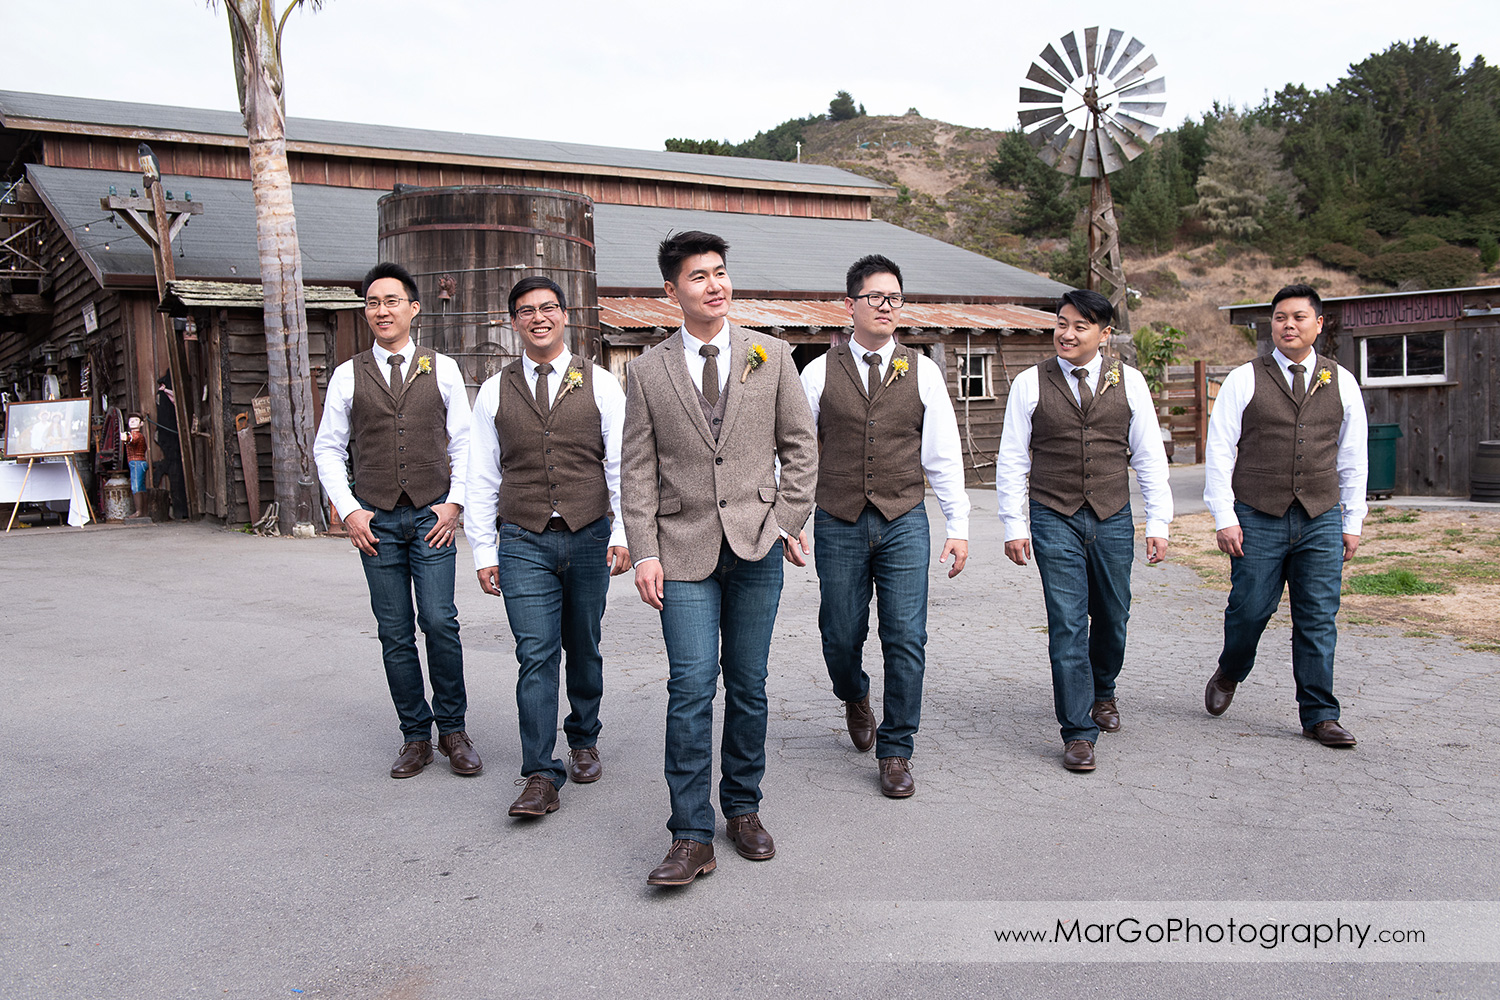 groom and groomsmen walking at Long Branch Saloon & Farms in Half Moon Bay